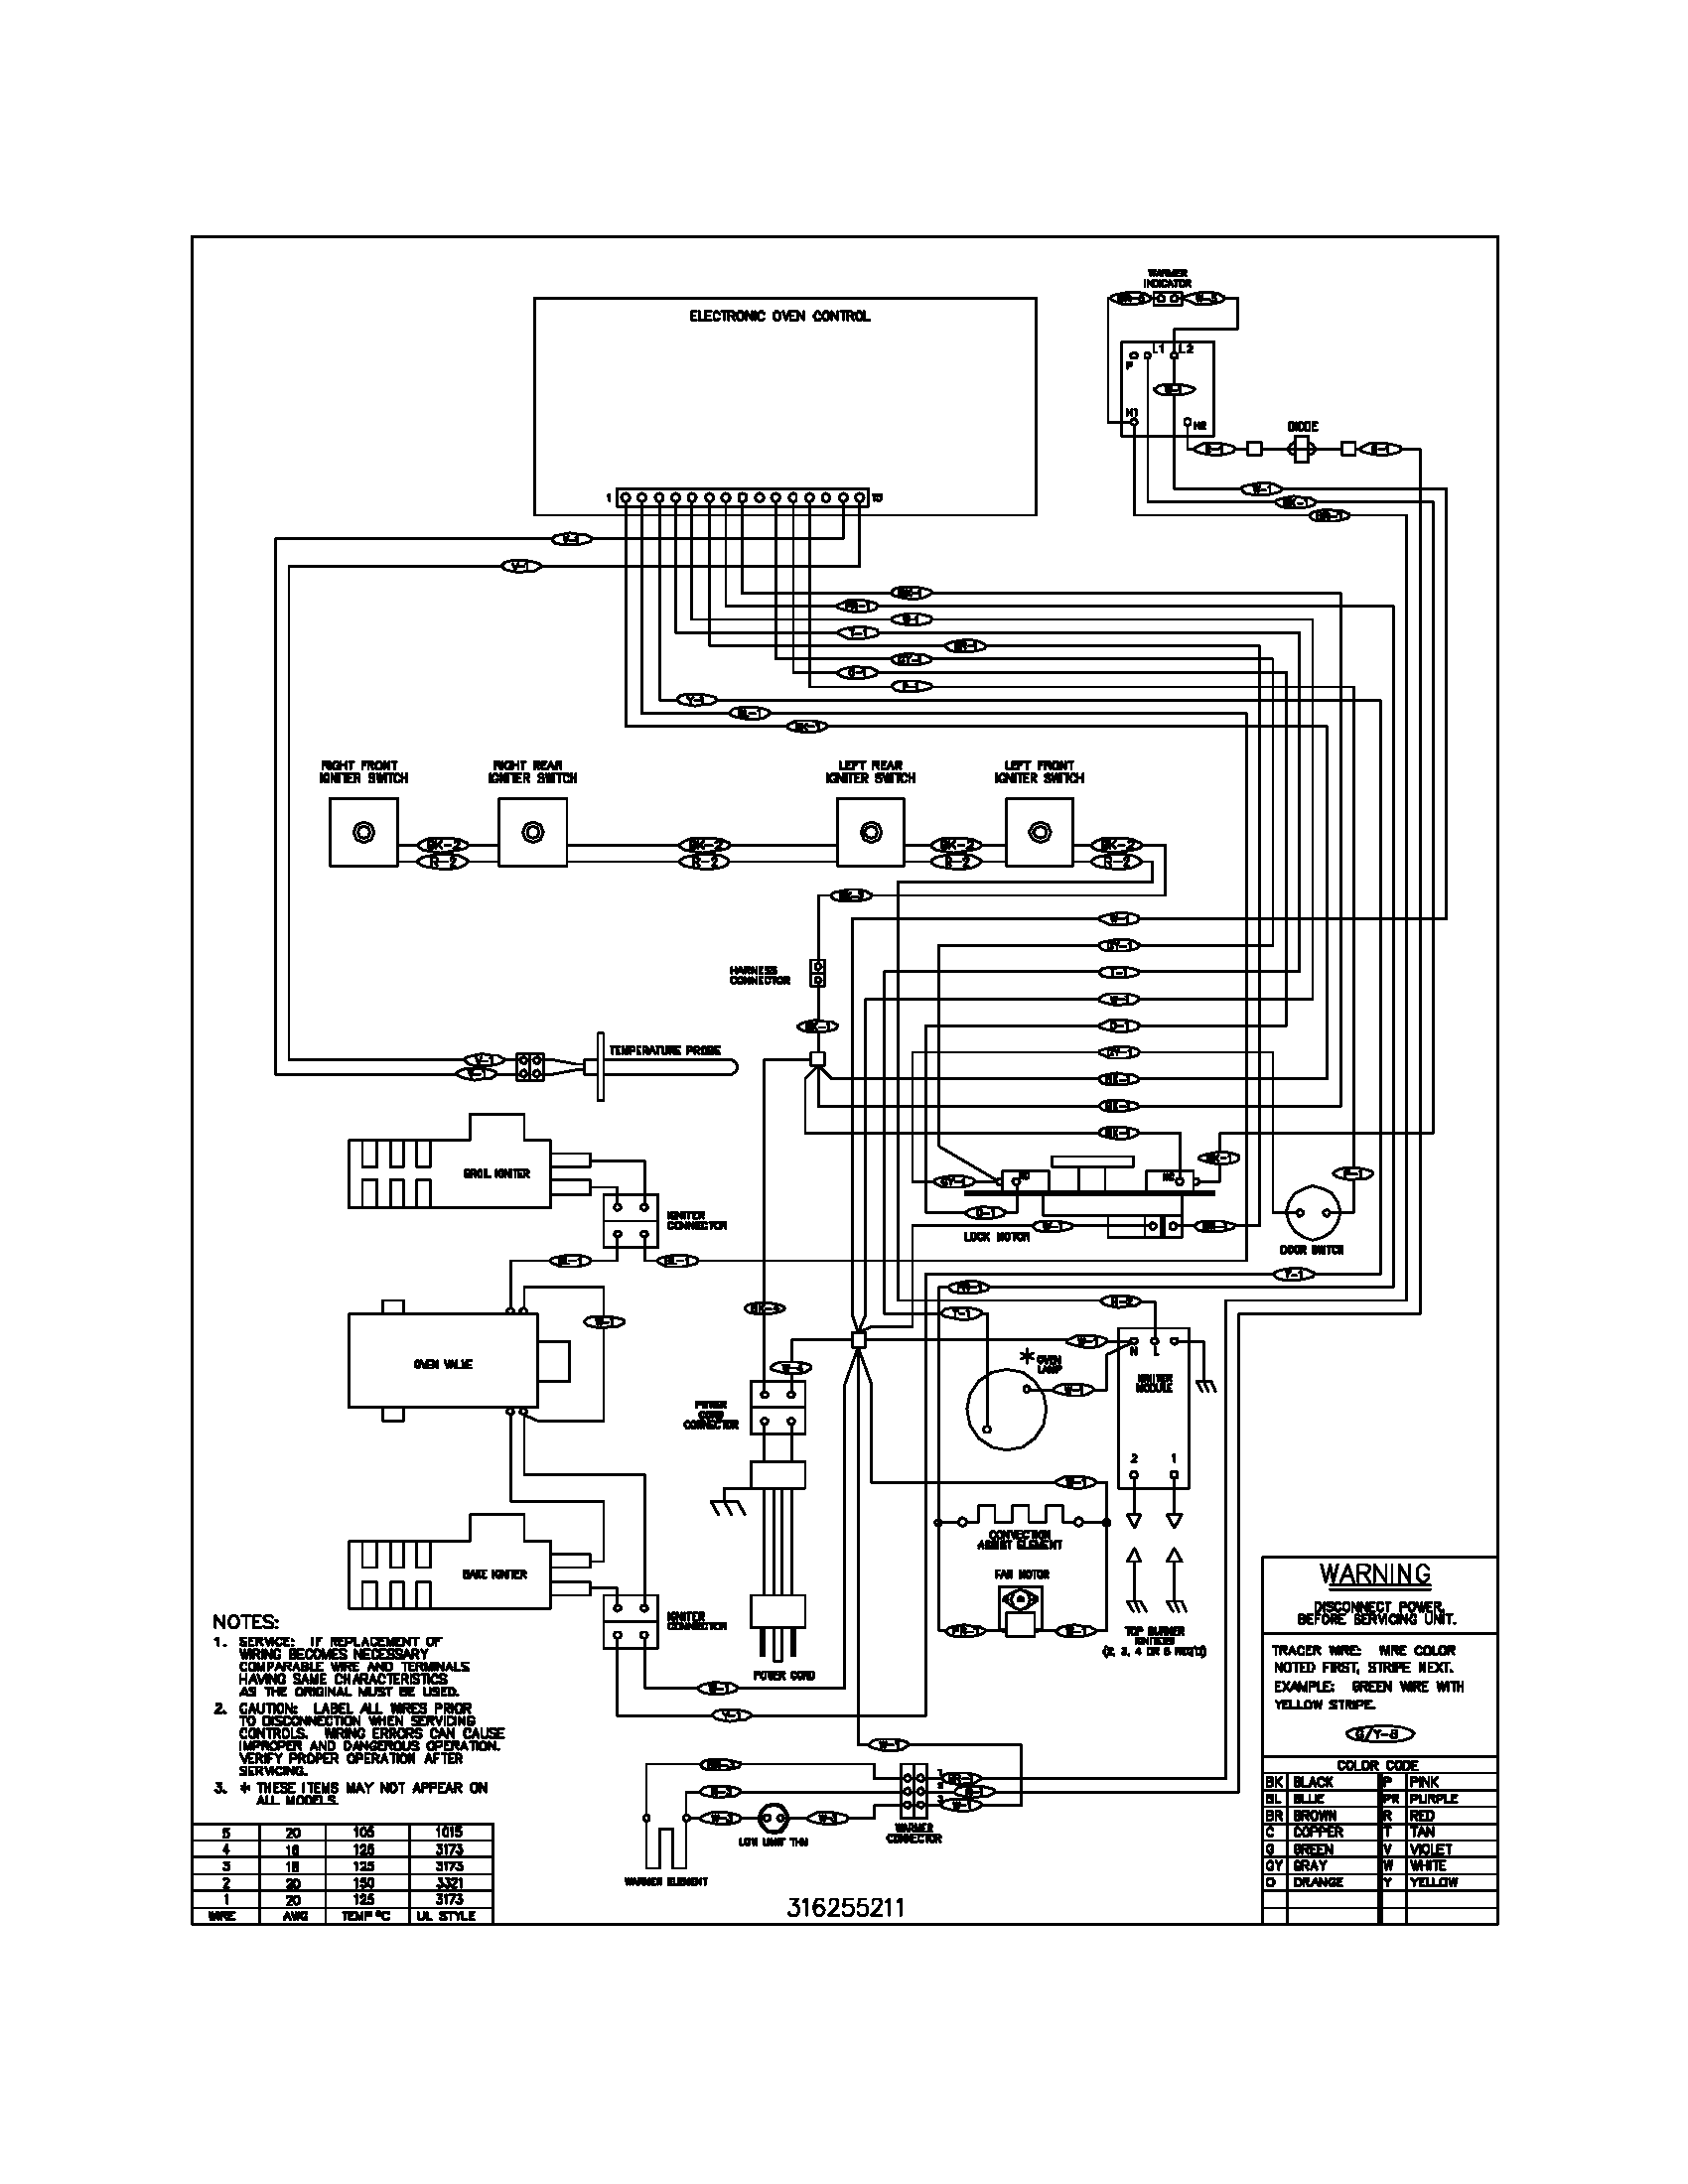 kitchenaid superba oven wiring diagram wiring diagram rh c62 mikroflex de